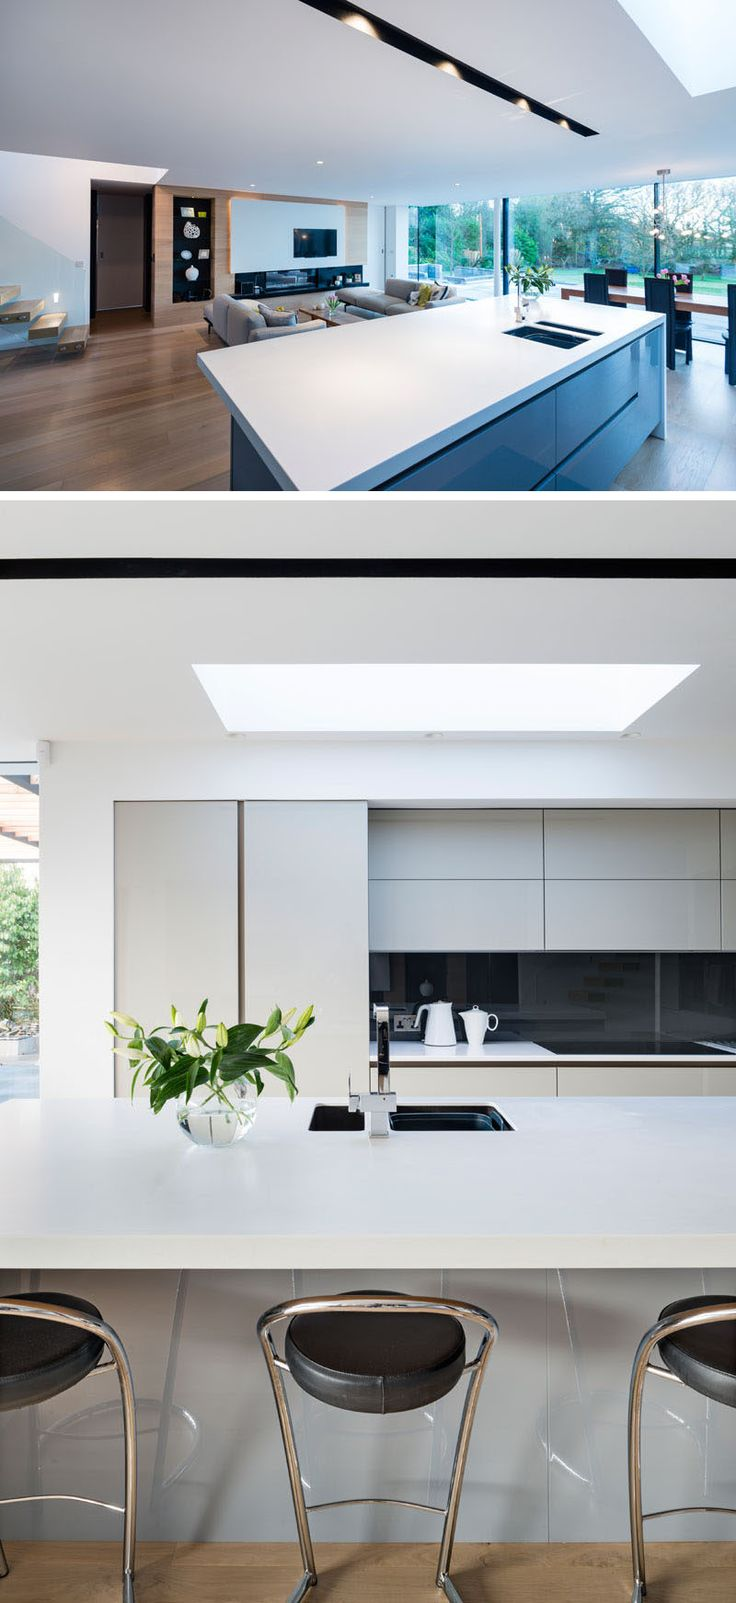 Hardware free minimalist grey cabinets and white countertops keep this kitchen looking sophisticated.